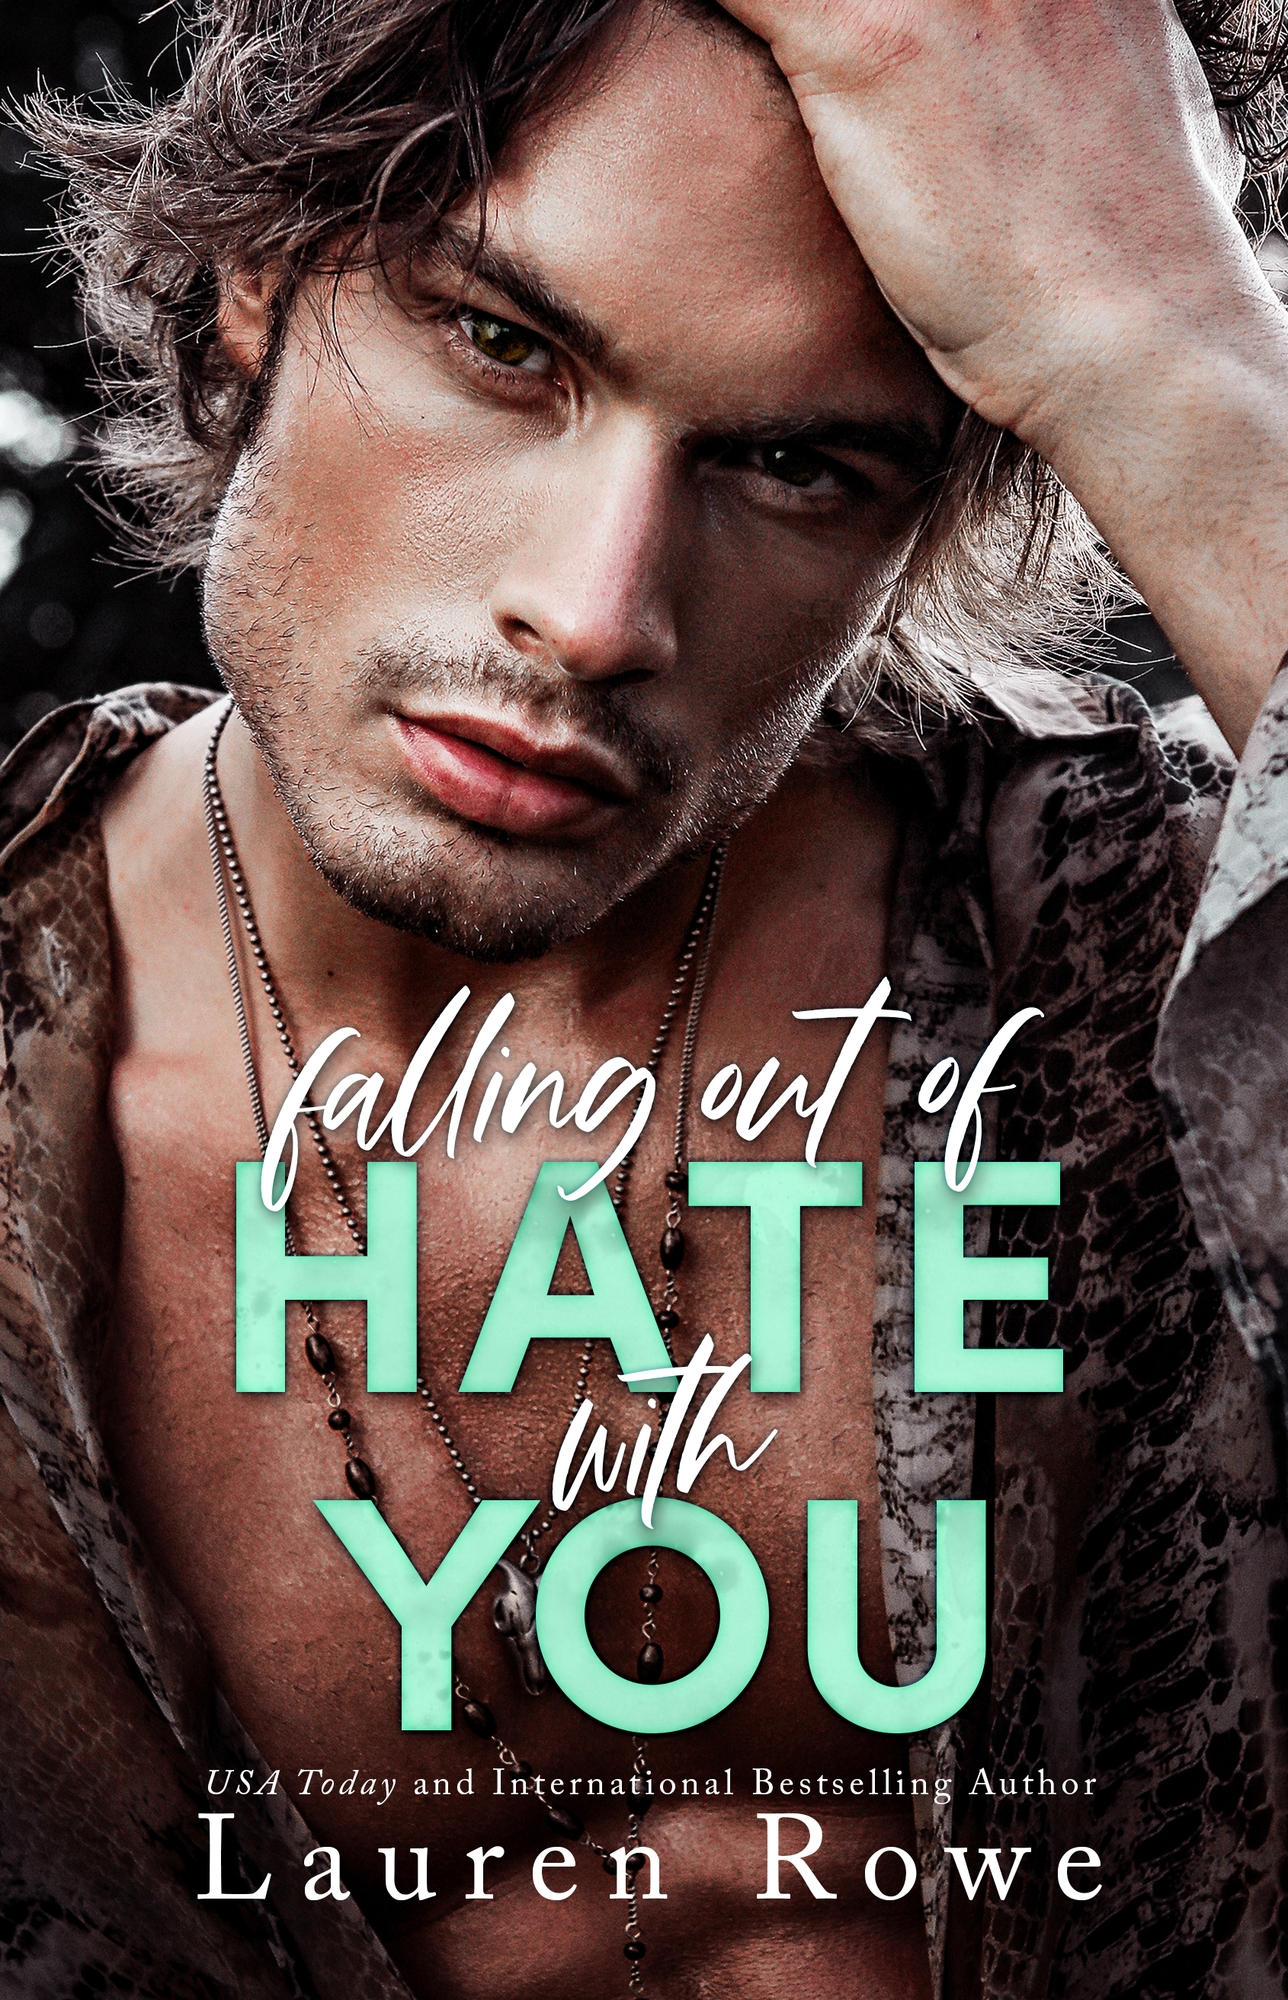 REVIEW ➞ Falling Out of Hate With You by Lauren Rowe